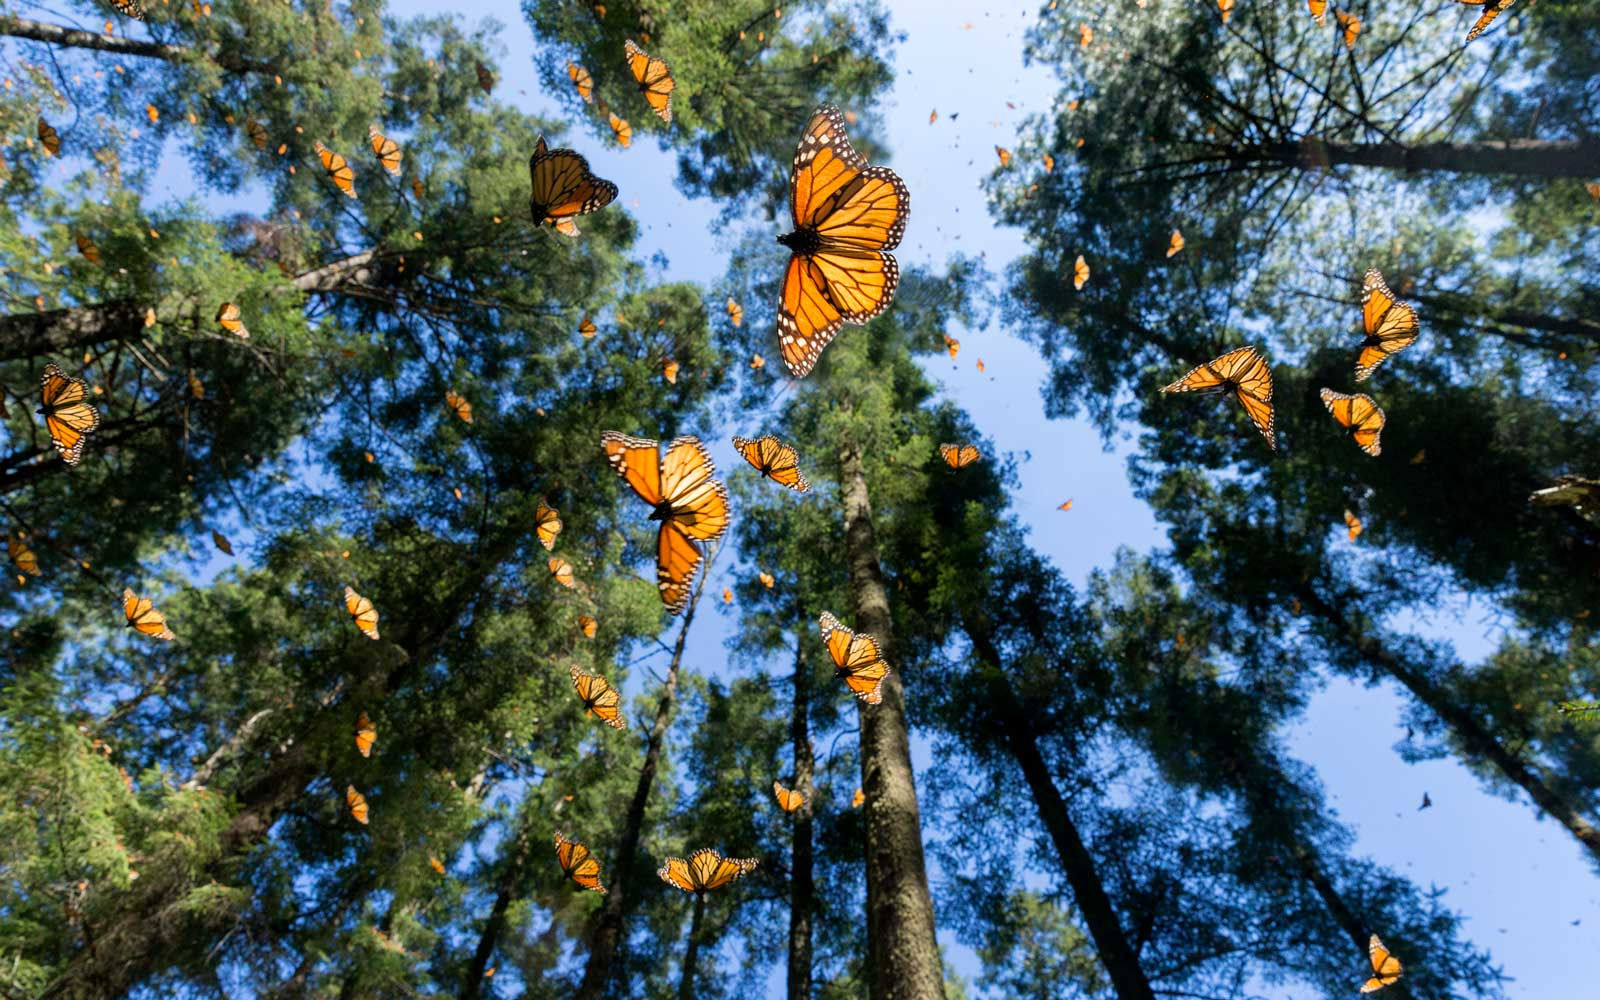 See the Monarch Butterfly Migration in Mexico